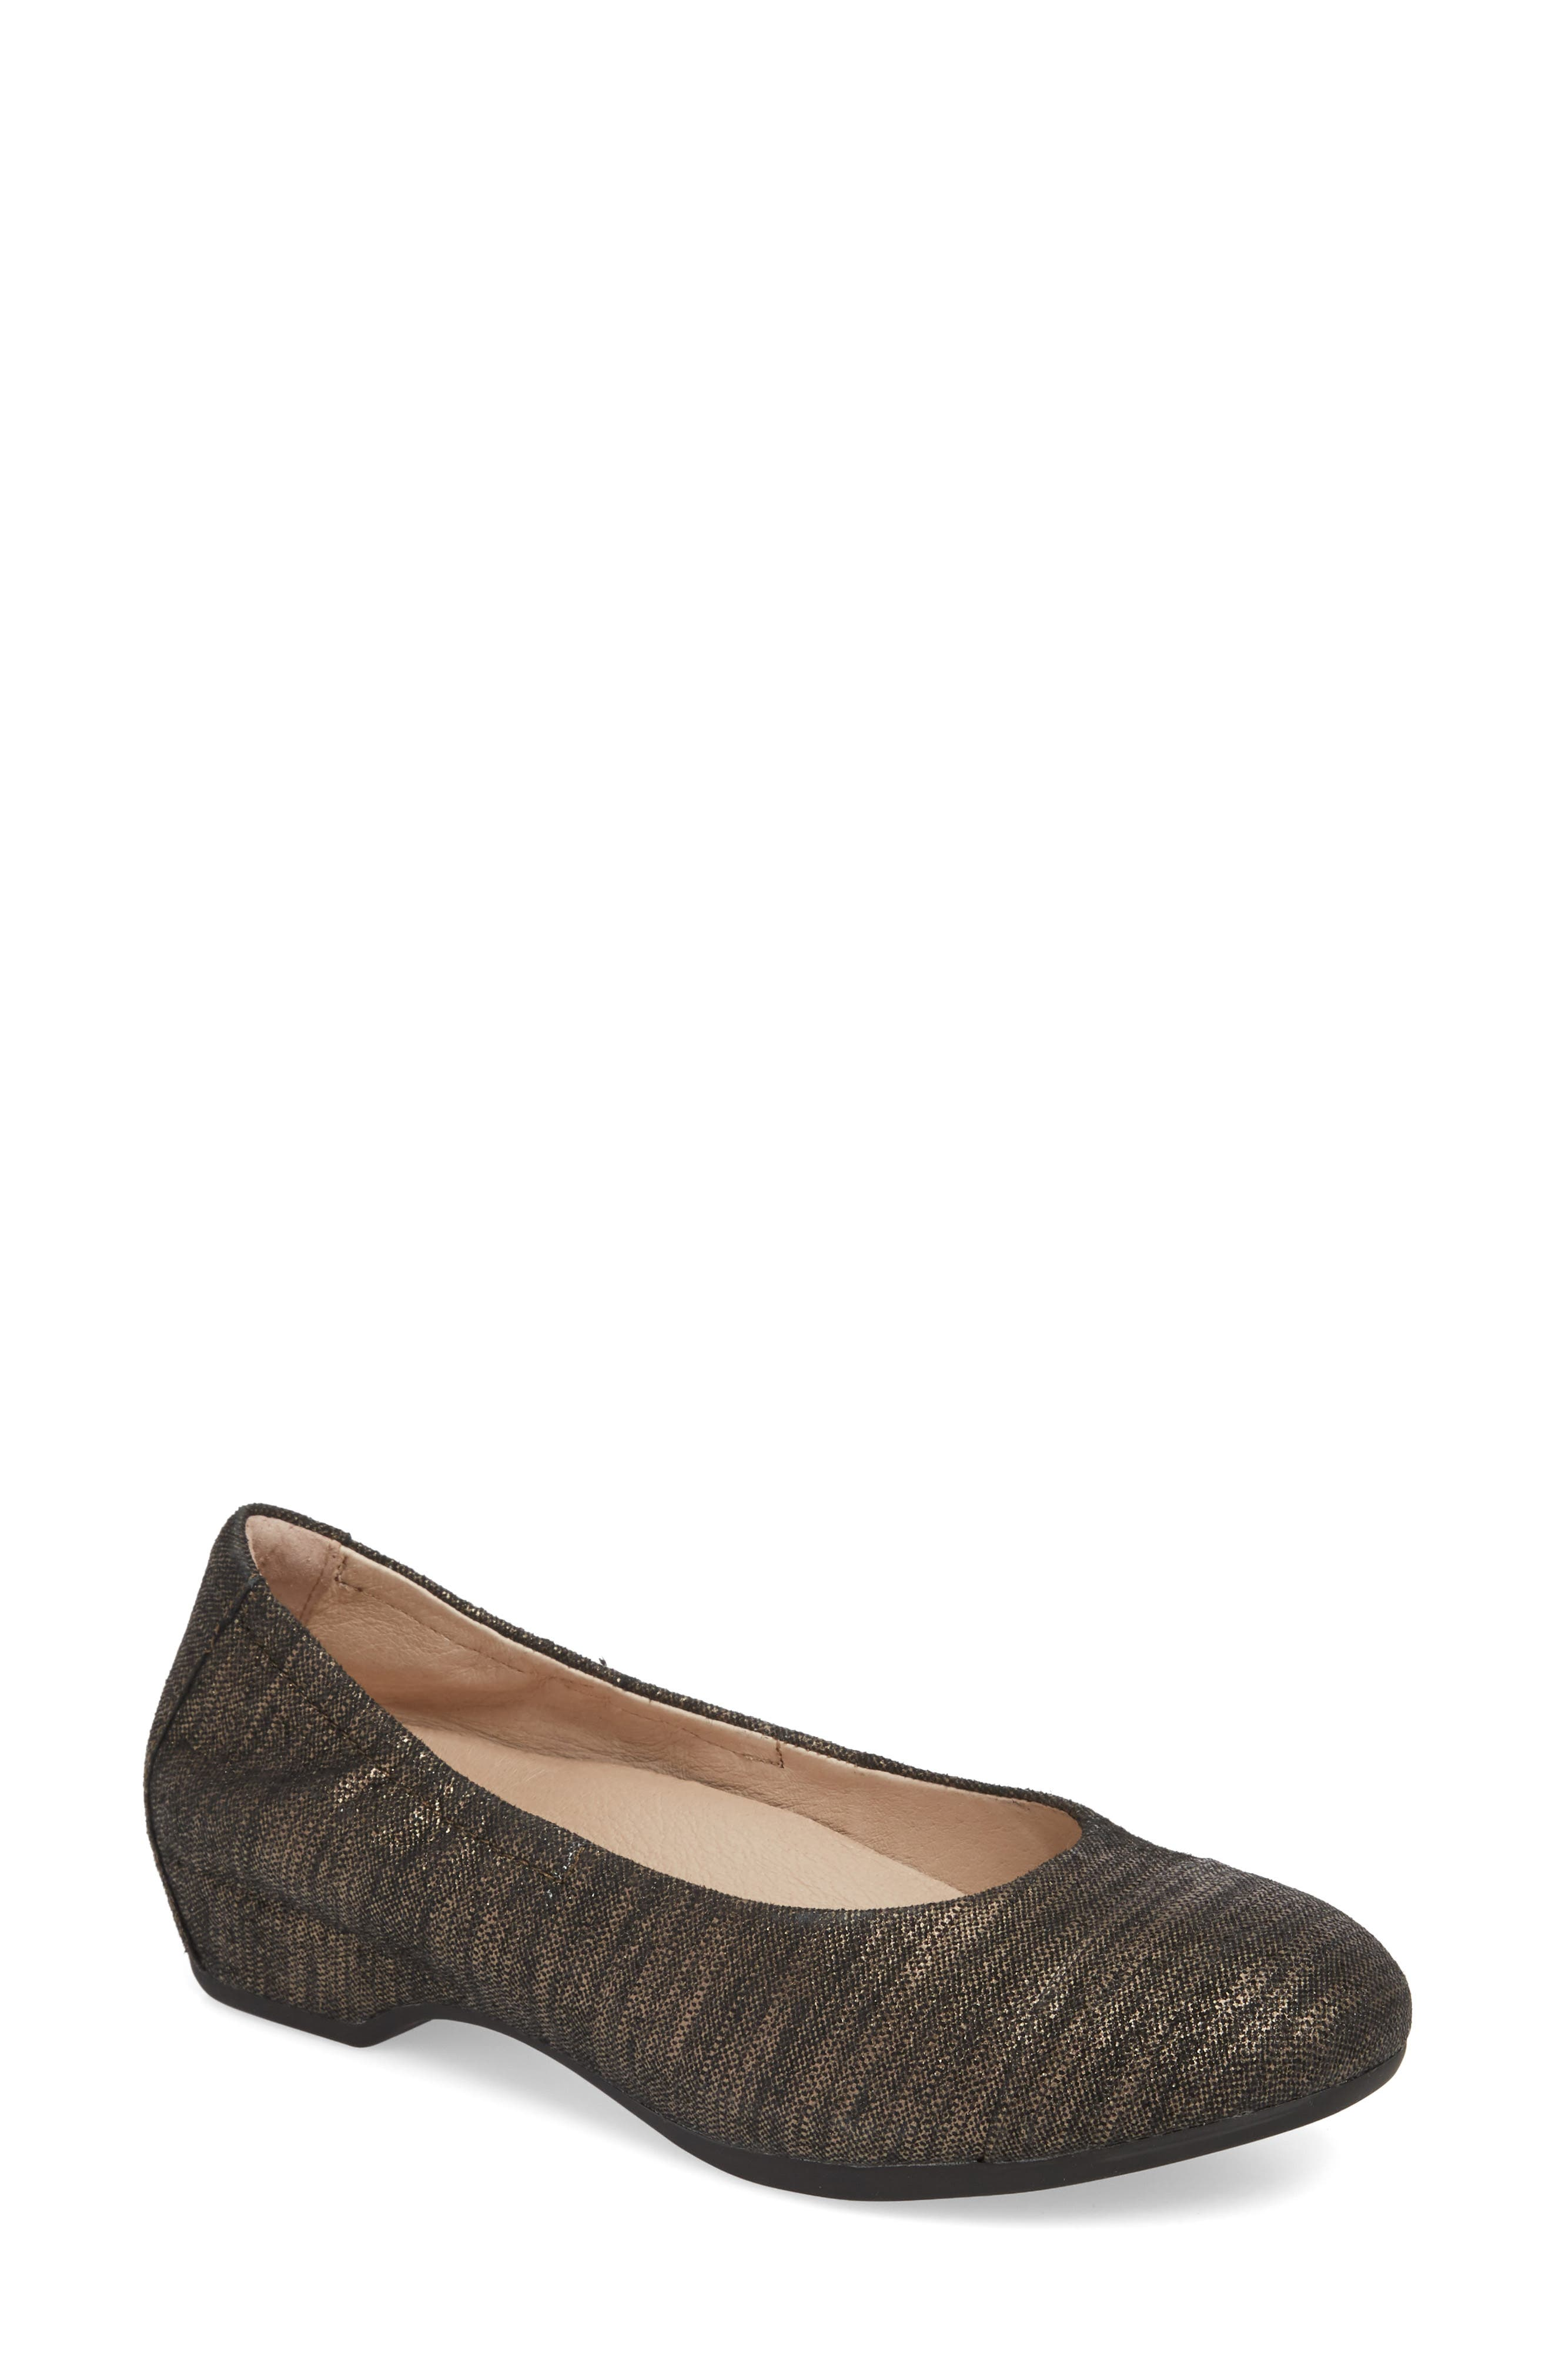 DANSKO Lisanne Flat, Main, color, PEWTER TEXTURED LEATHER